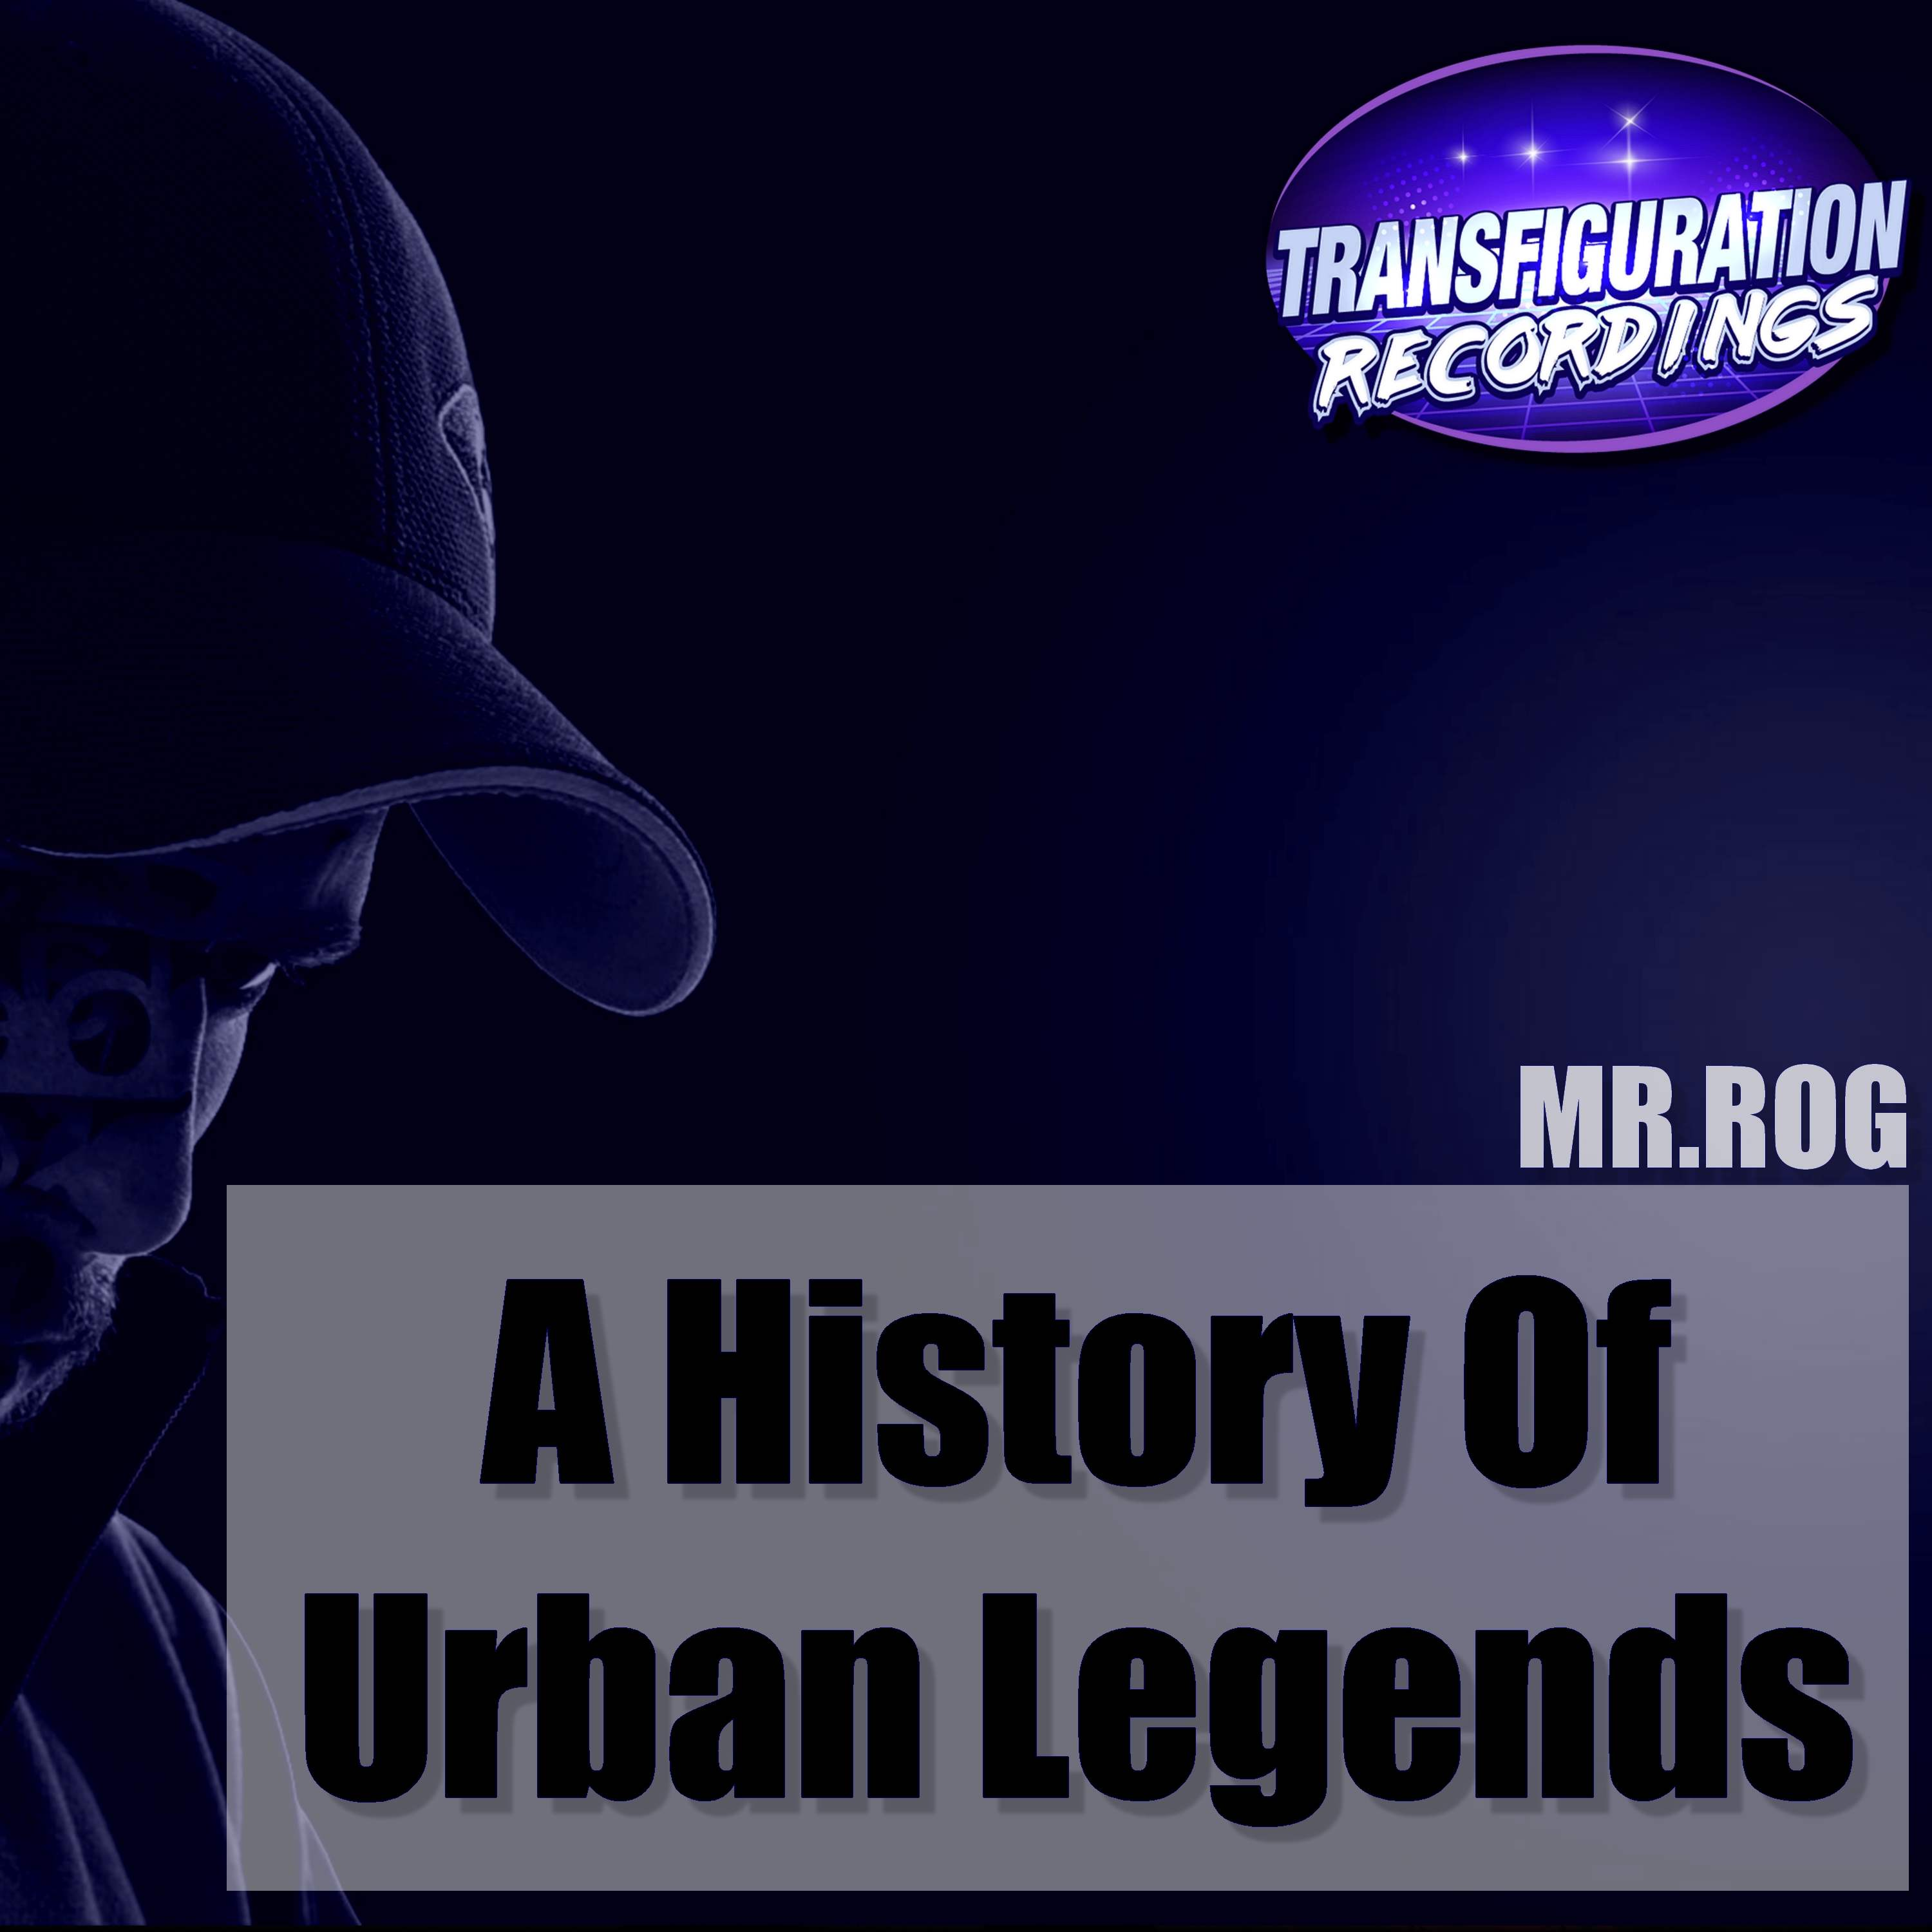 A History Of Urban Legends EP